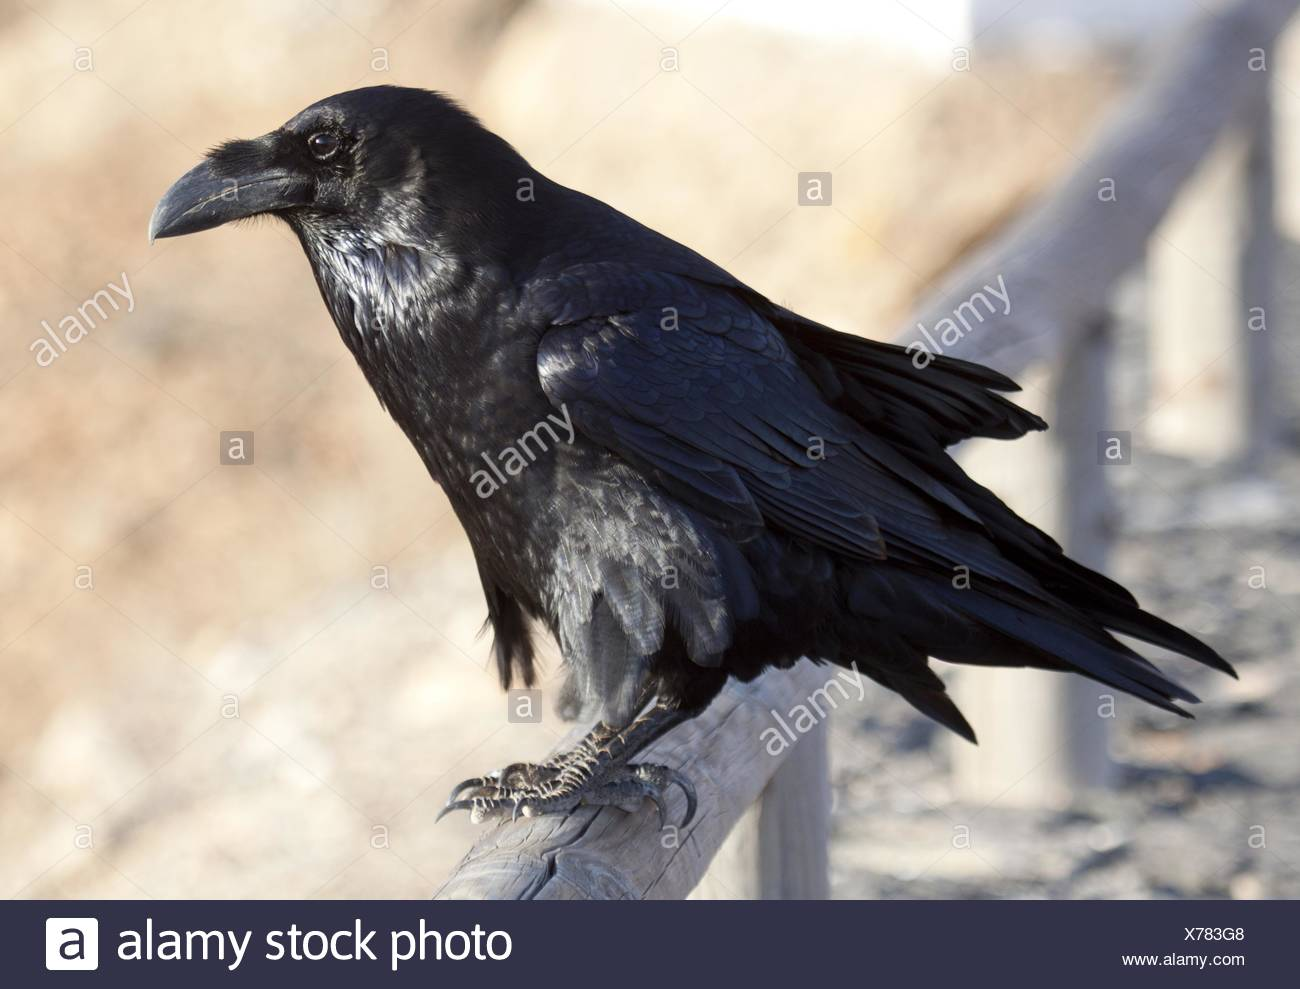 Northern Raven - Stock Image